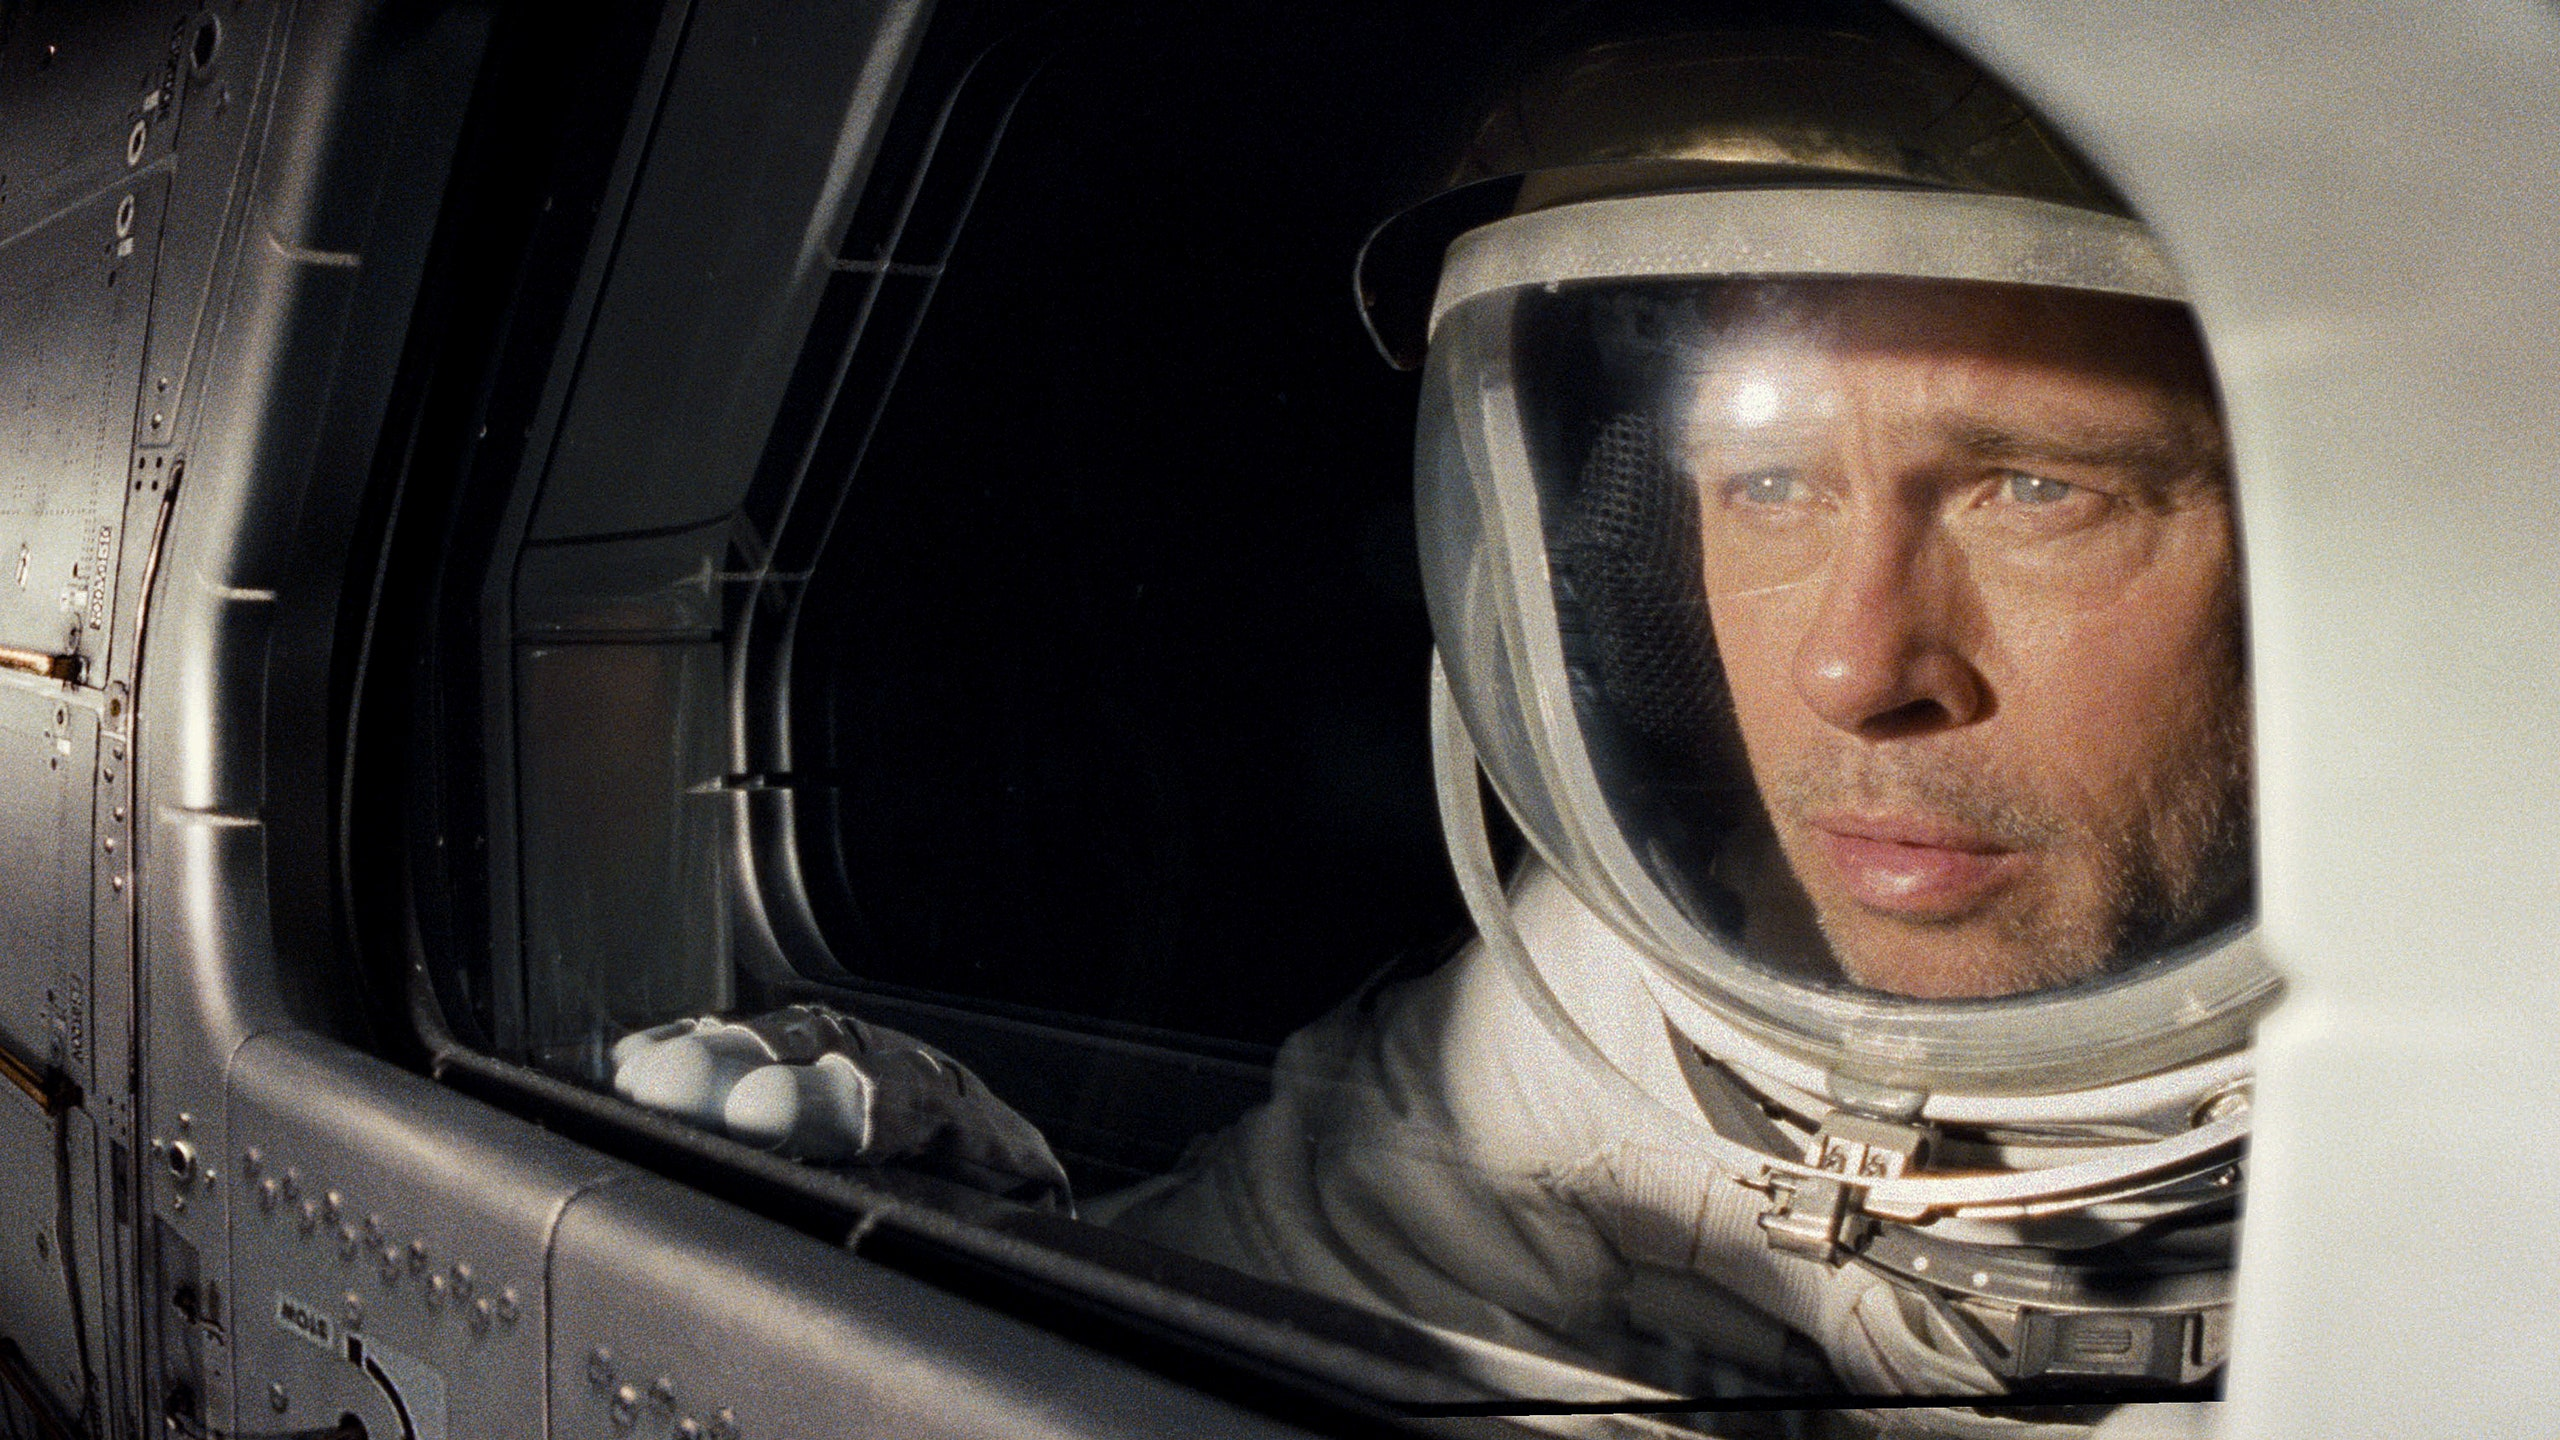 Roy McBride (Brad Pitt) peers out the window of a spaceship in Ad Astra